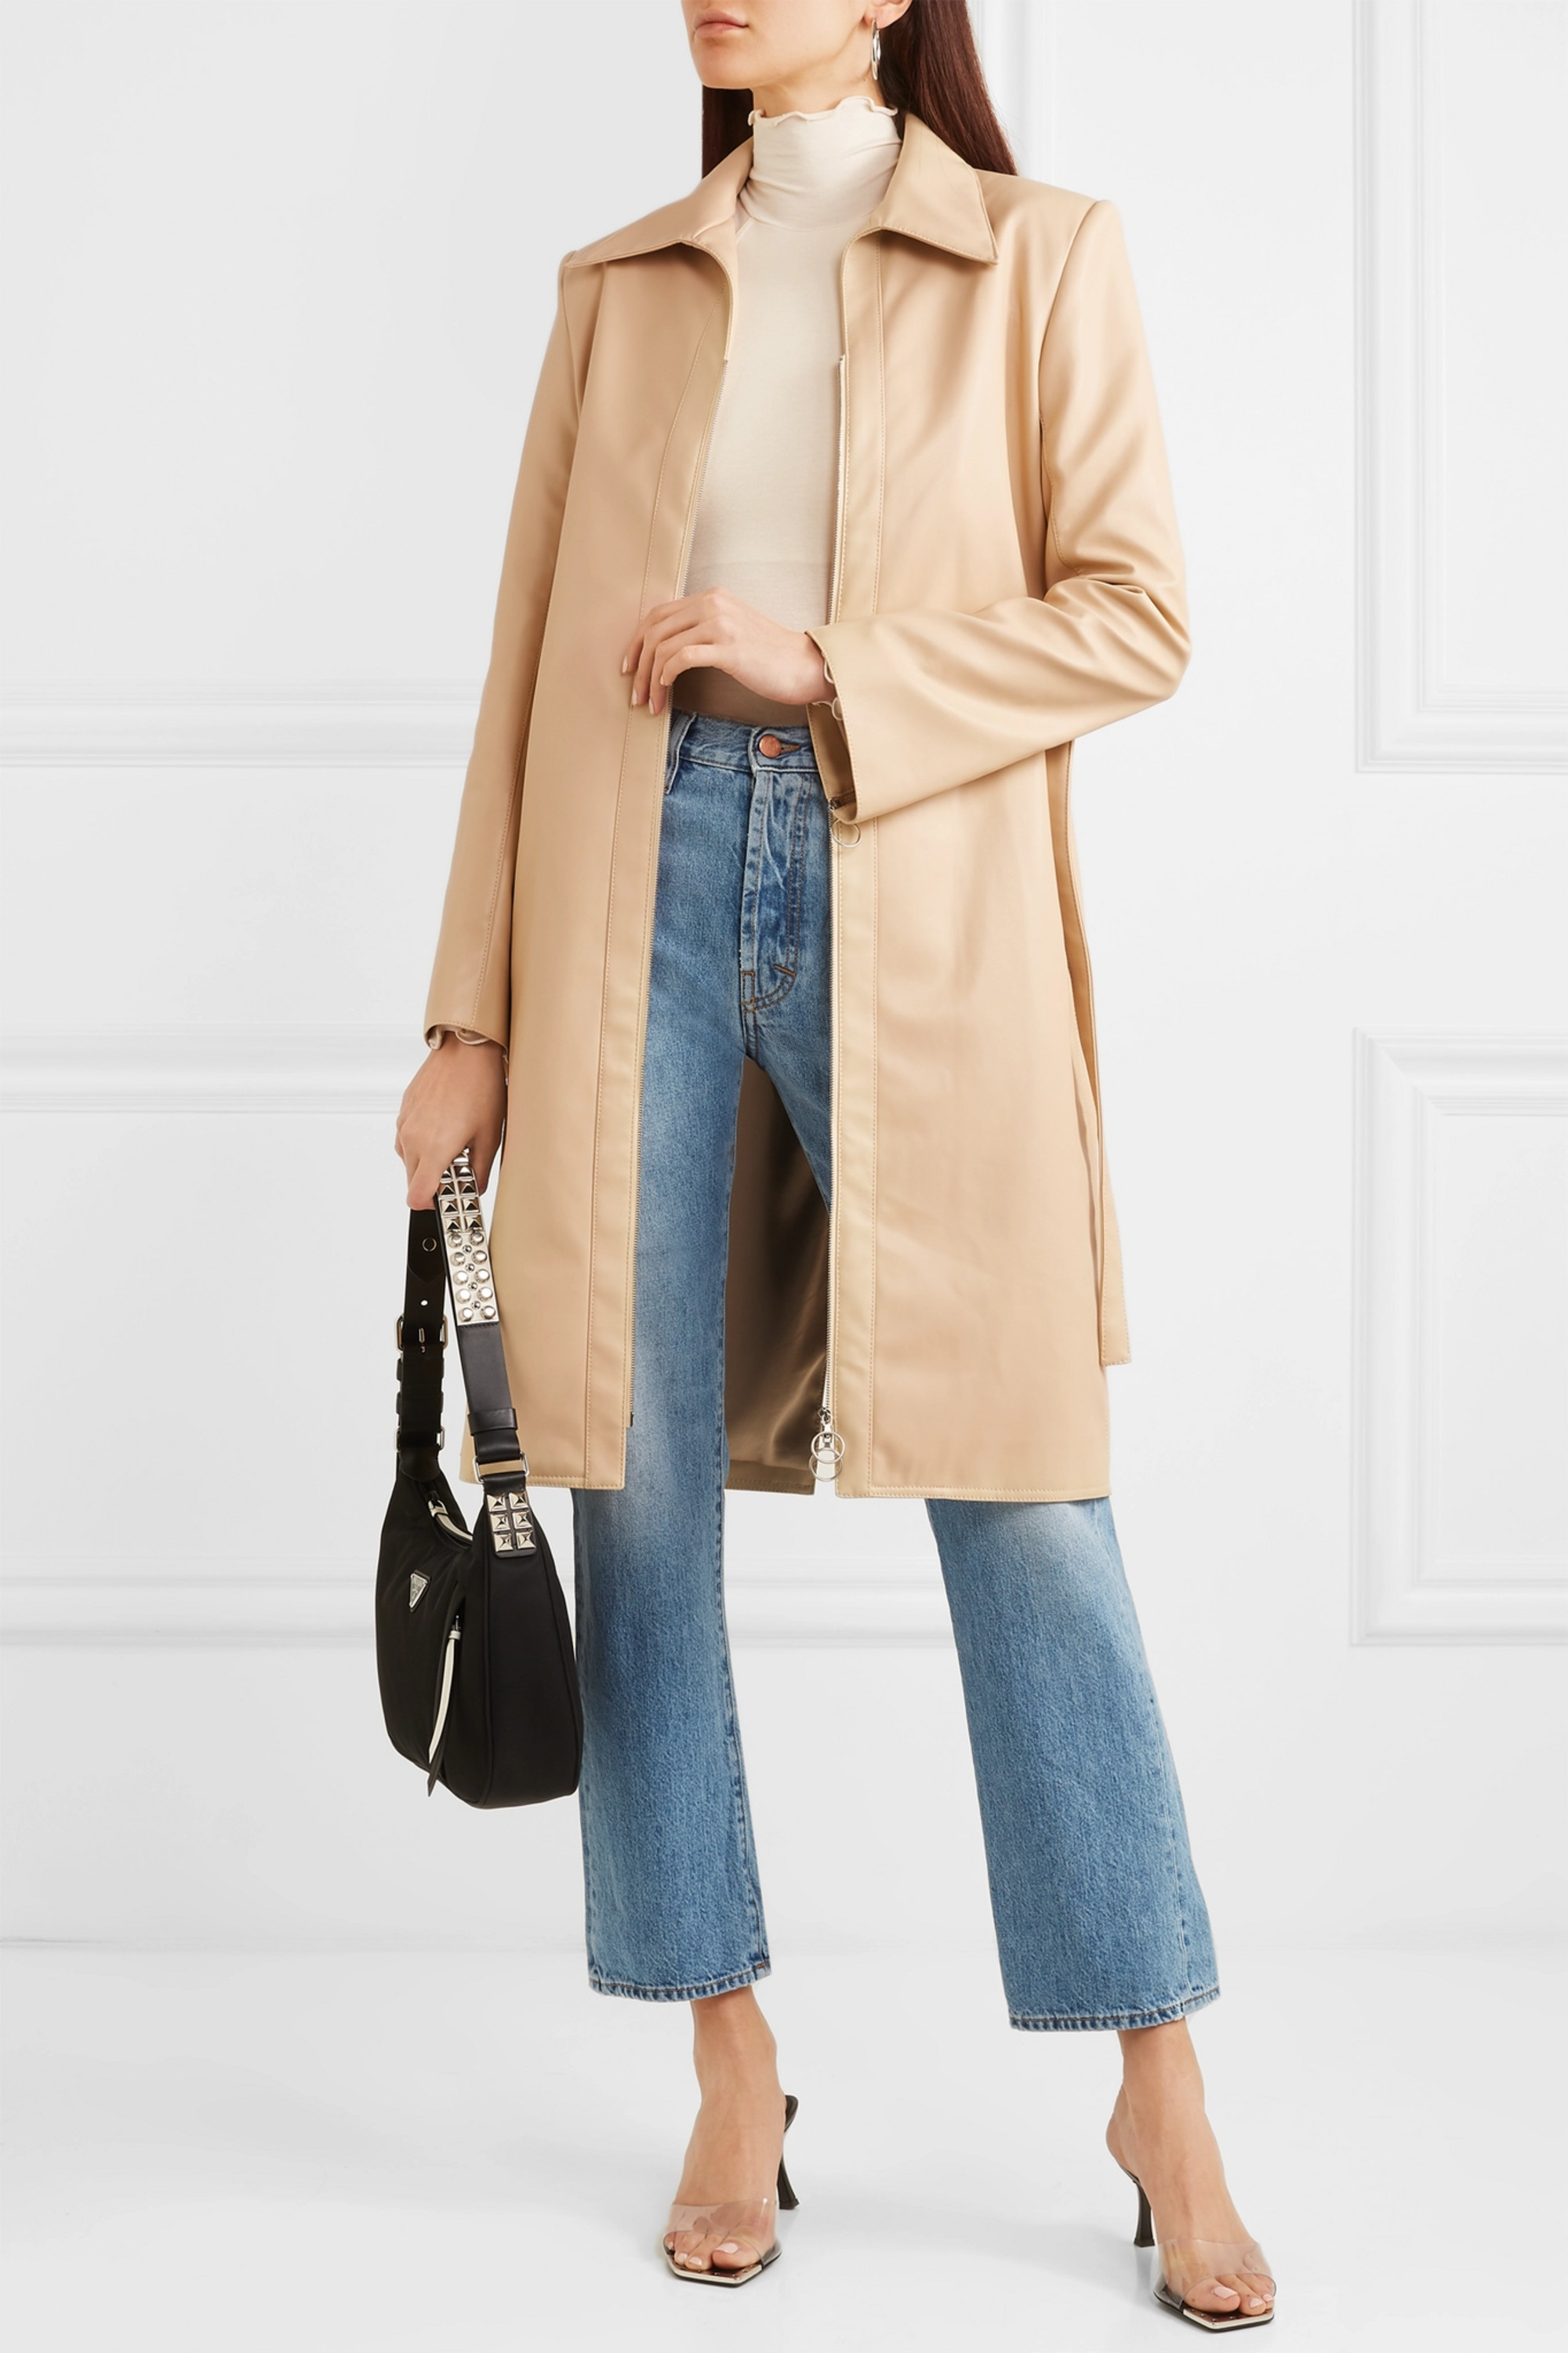 Orseund Iris Belted vegan leather jacket